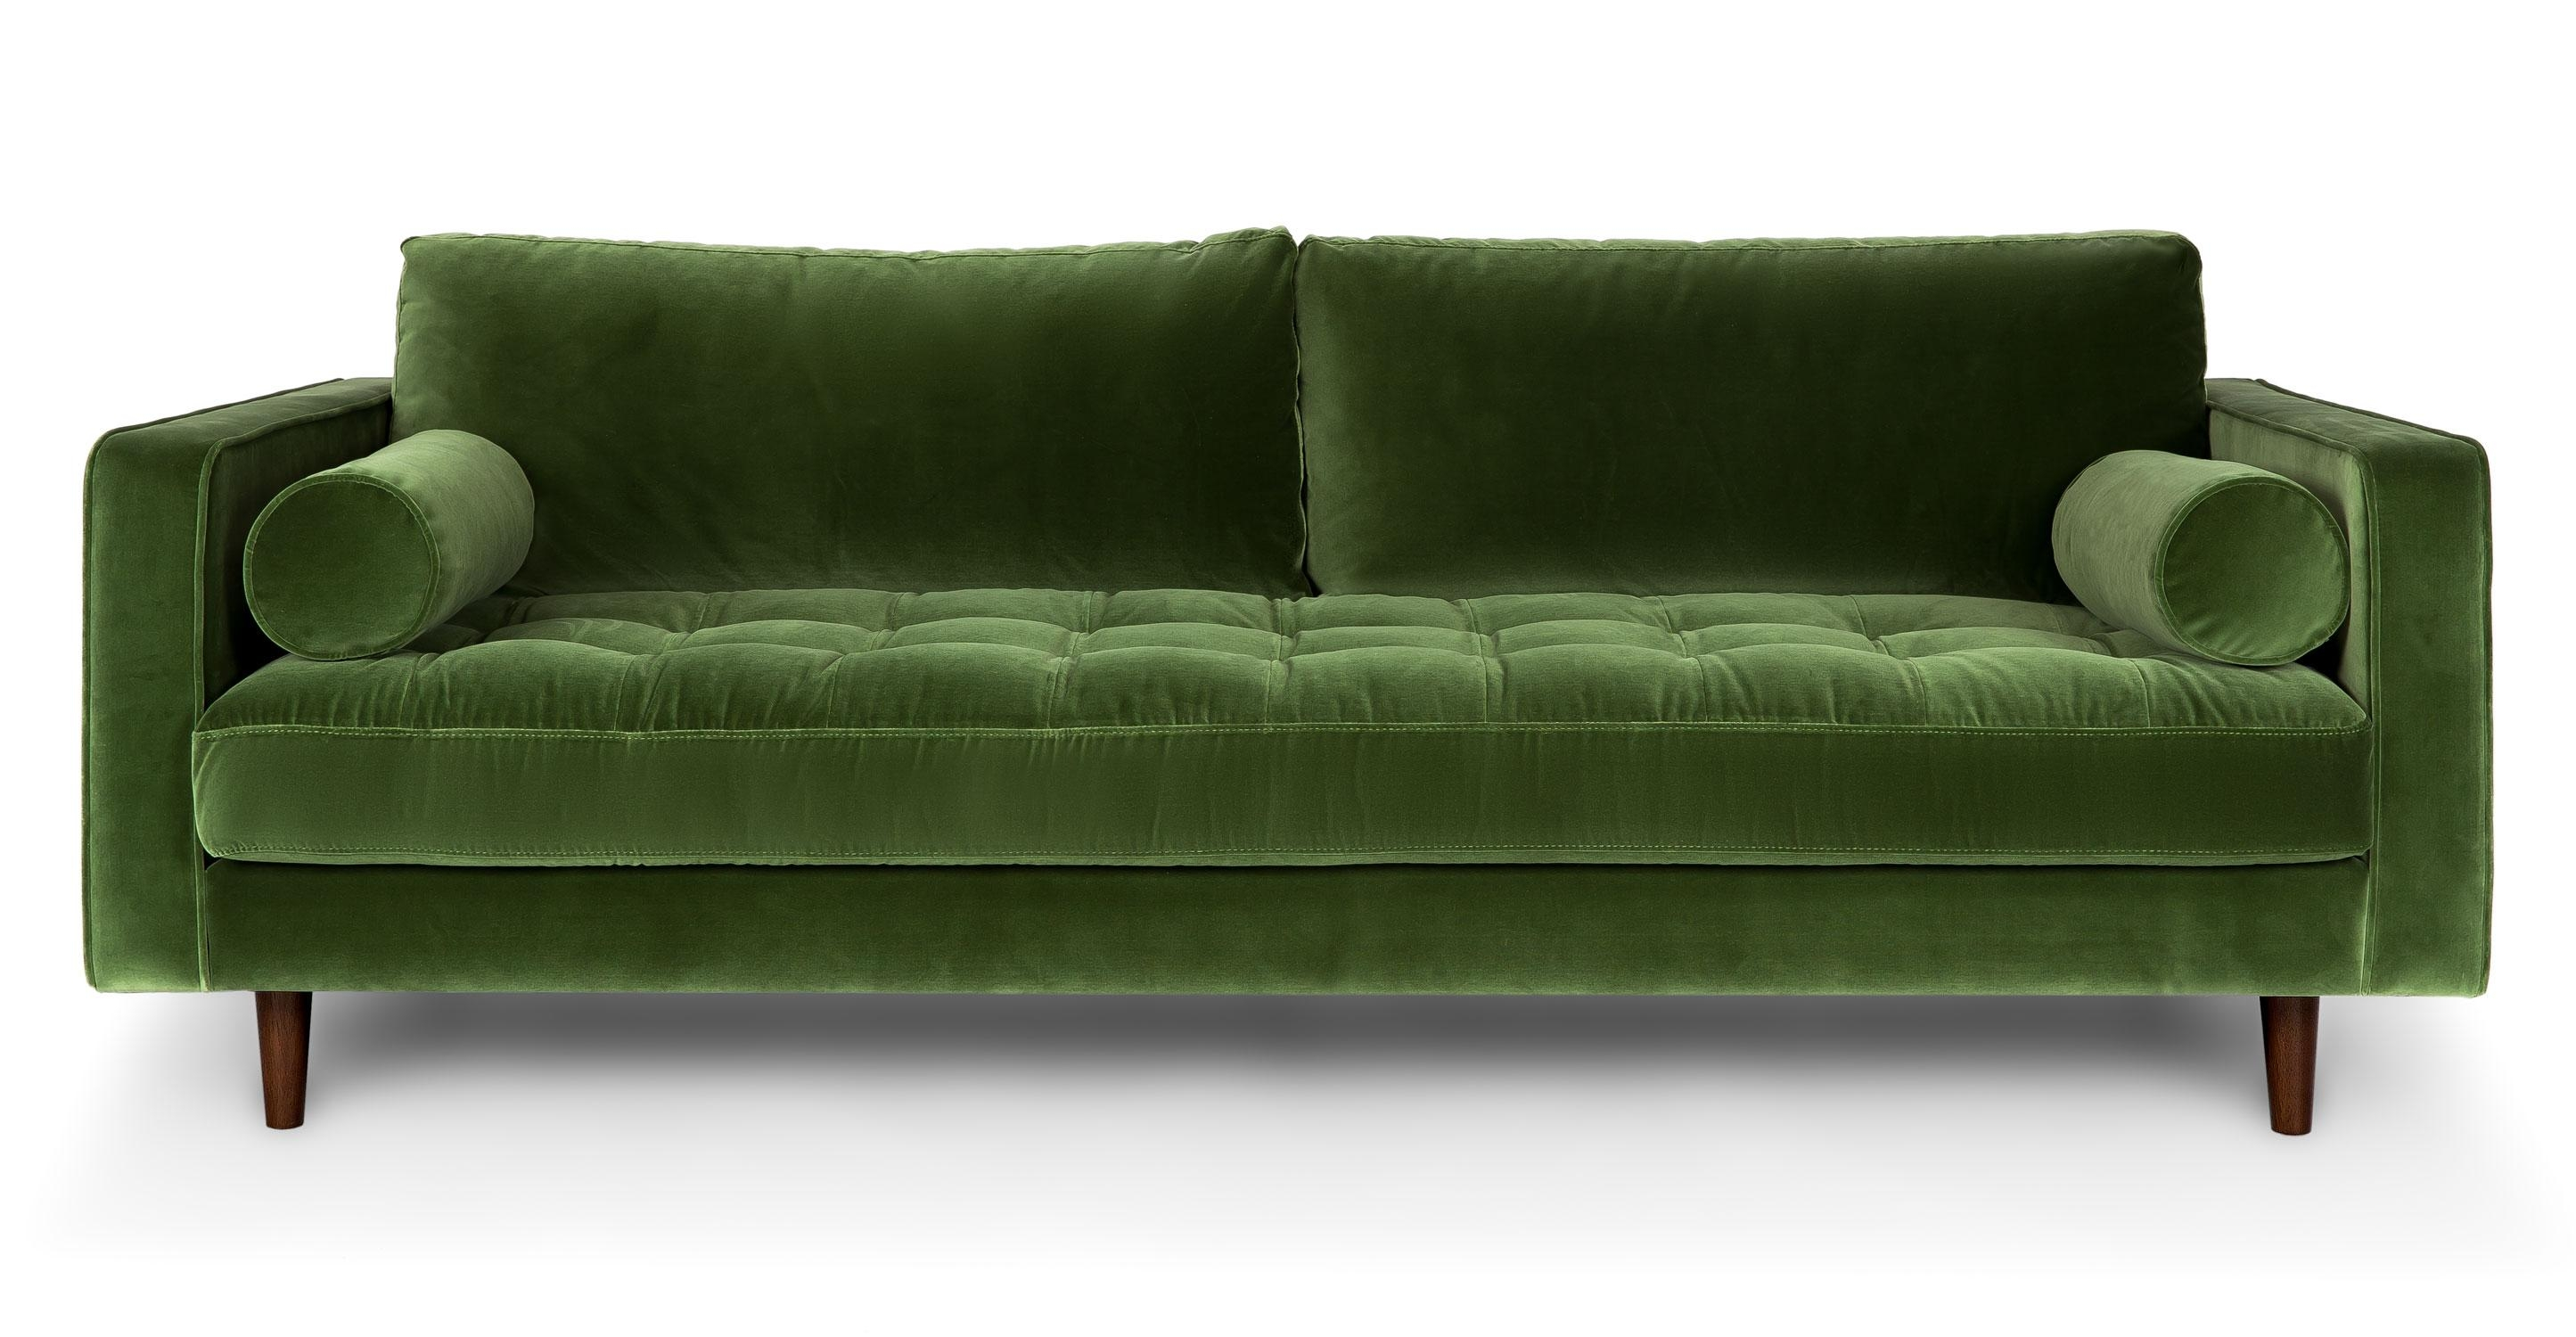 Scandinavian Sofa Green – Ftfpgh Throughout Green Sofas (Image 16 of 20)